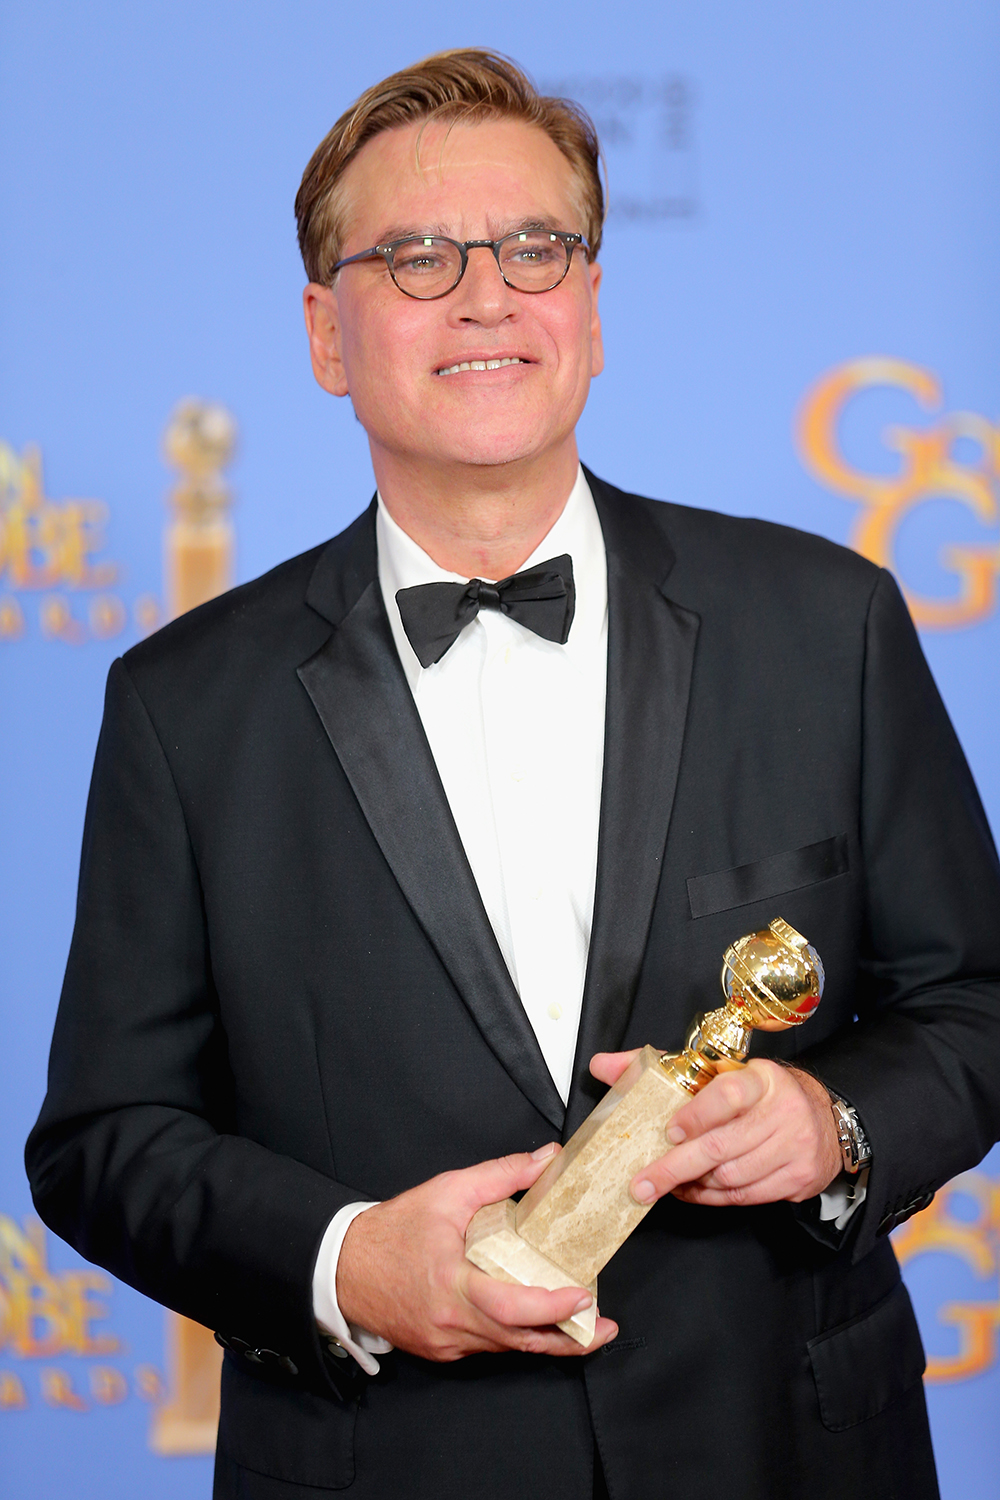 BEVERLY HILLS, CA - JANUARY 10: Screenwriter Aaron Sorkin, winner of Best Screenplay for 'Steve Jobs,' poses in the press room during the 73rd Annual Golden Globe Awards held at the Beverly Hilton Hotel on January 10, 2016 in Beverly Hills, California. Mark Davis/Getty Images/AFP